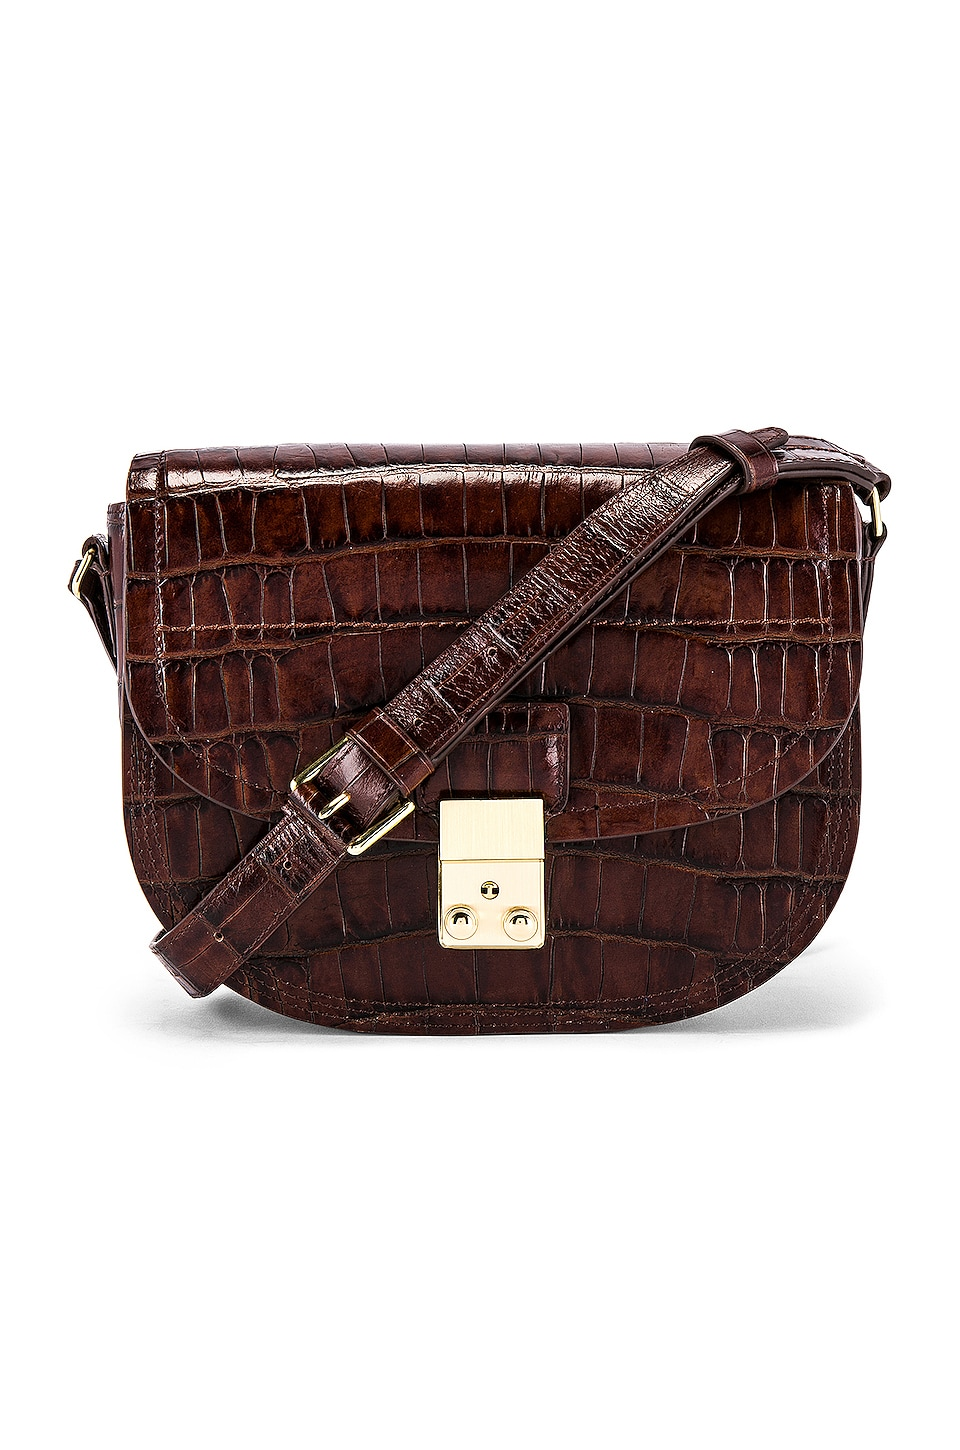 3.1 phillip lim Pashli Saddle Bag in Chesnut